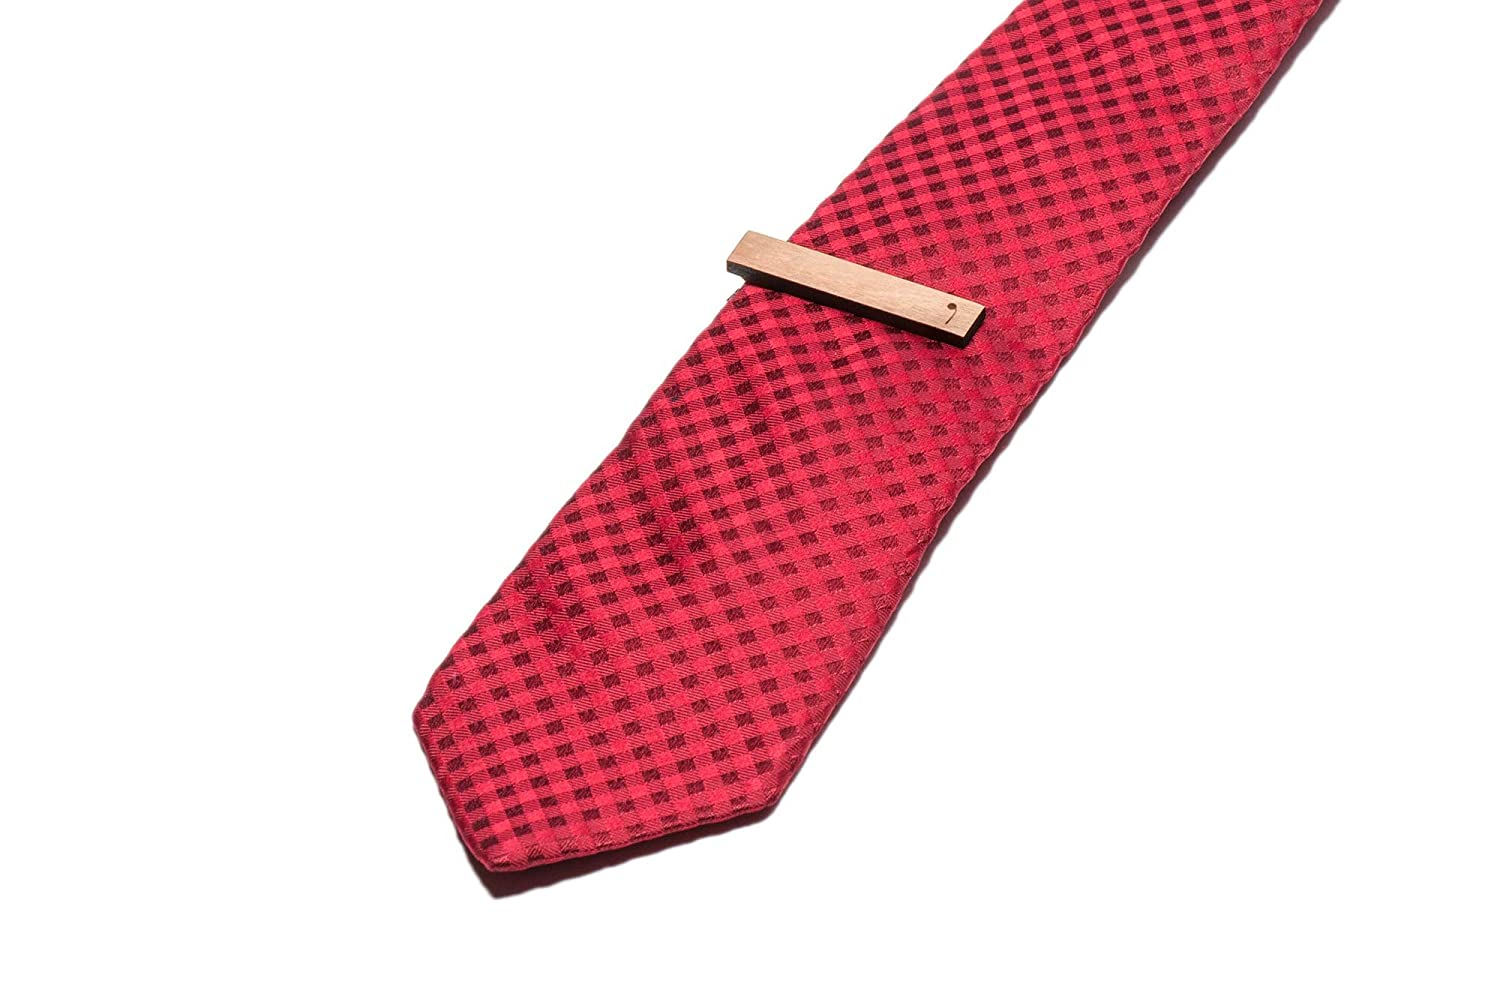 Wooden Accessories Company Wooden Tie Clips with Laser Engraved Bent Spoon Design Cherry Wood Tie Bar Engraved in The USA